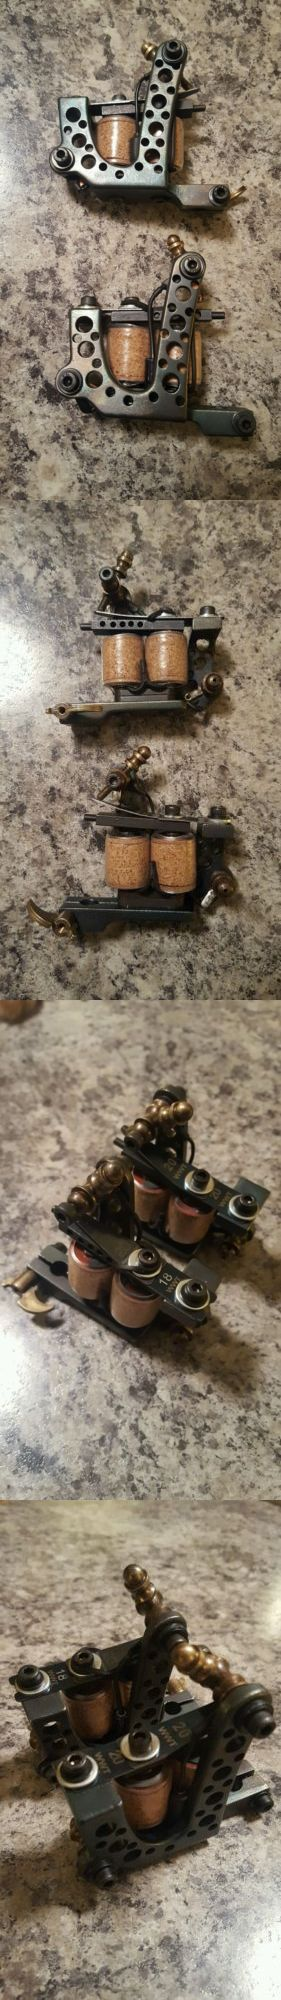 Tattoo Machines and Parts: Custom Tattoo Machine Set With Handmade 1 Coils 8 Wrap Liner And Shader BUY IT NOW ONLY: $275.0